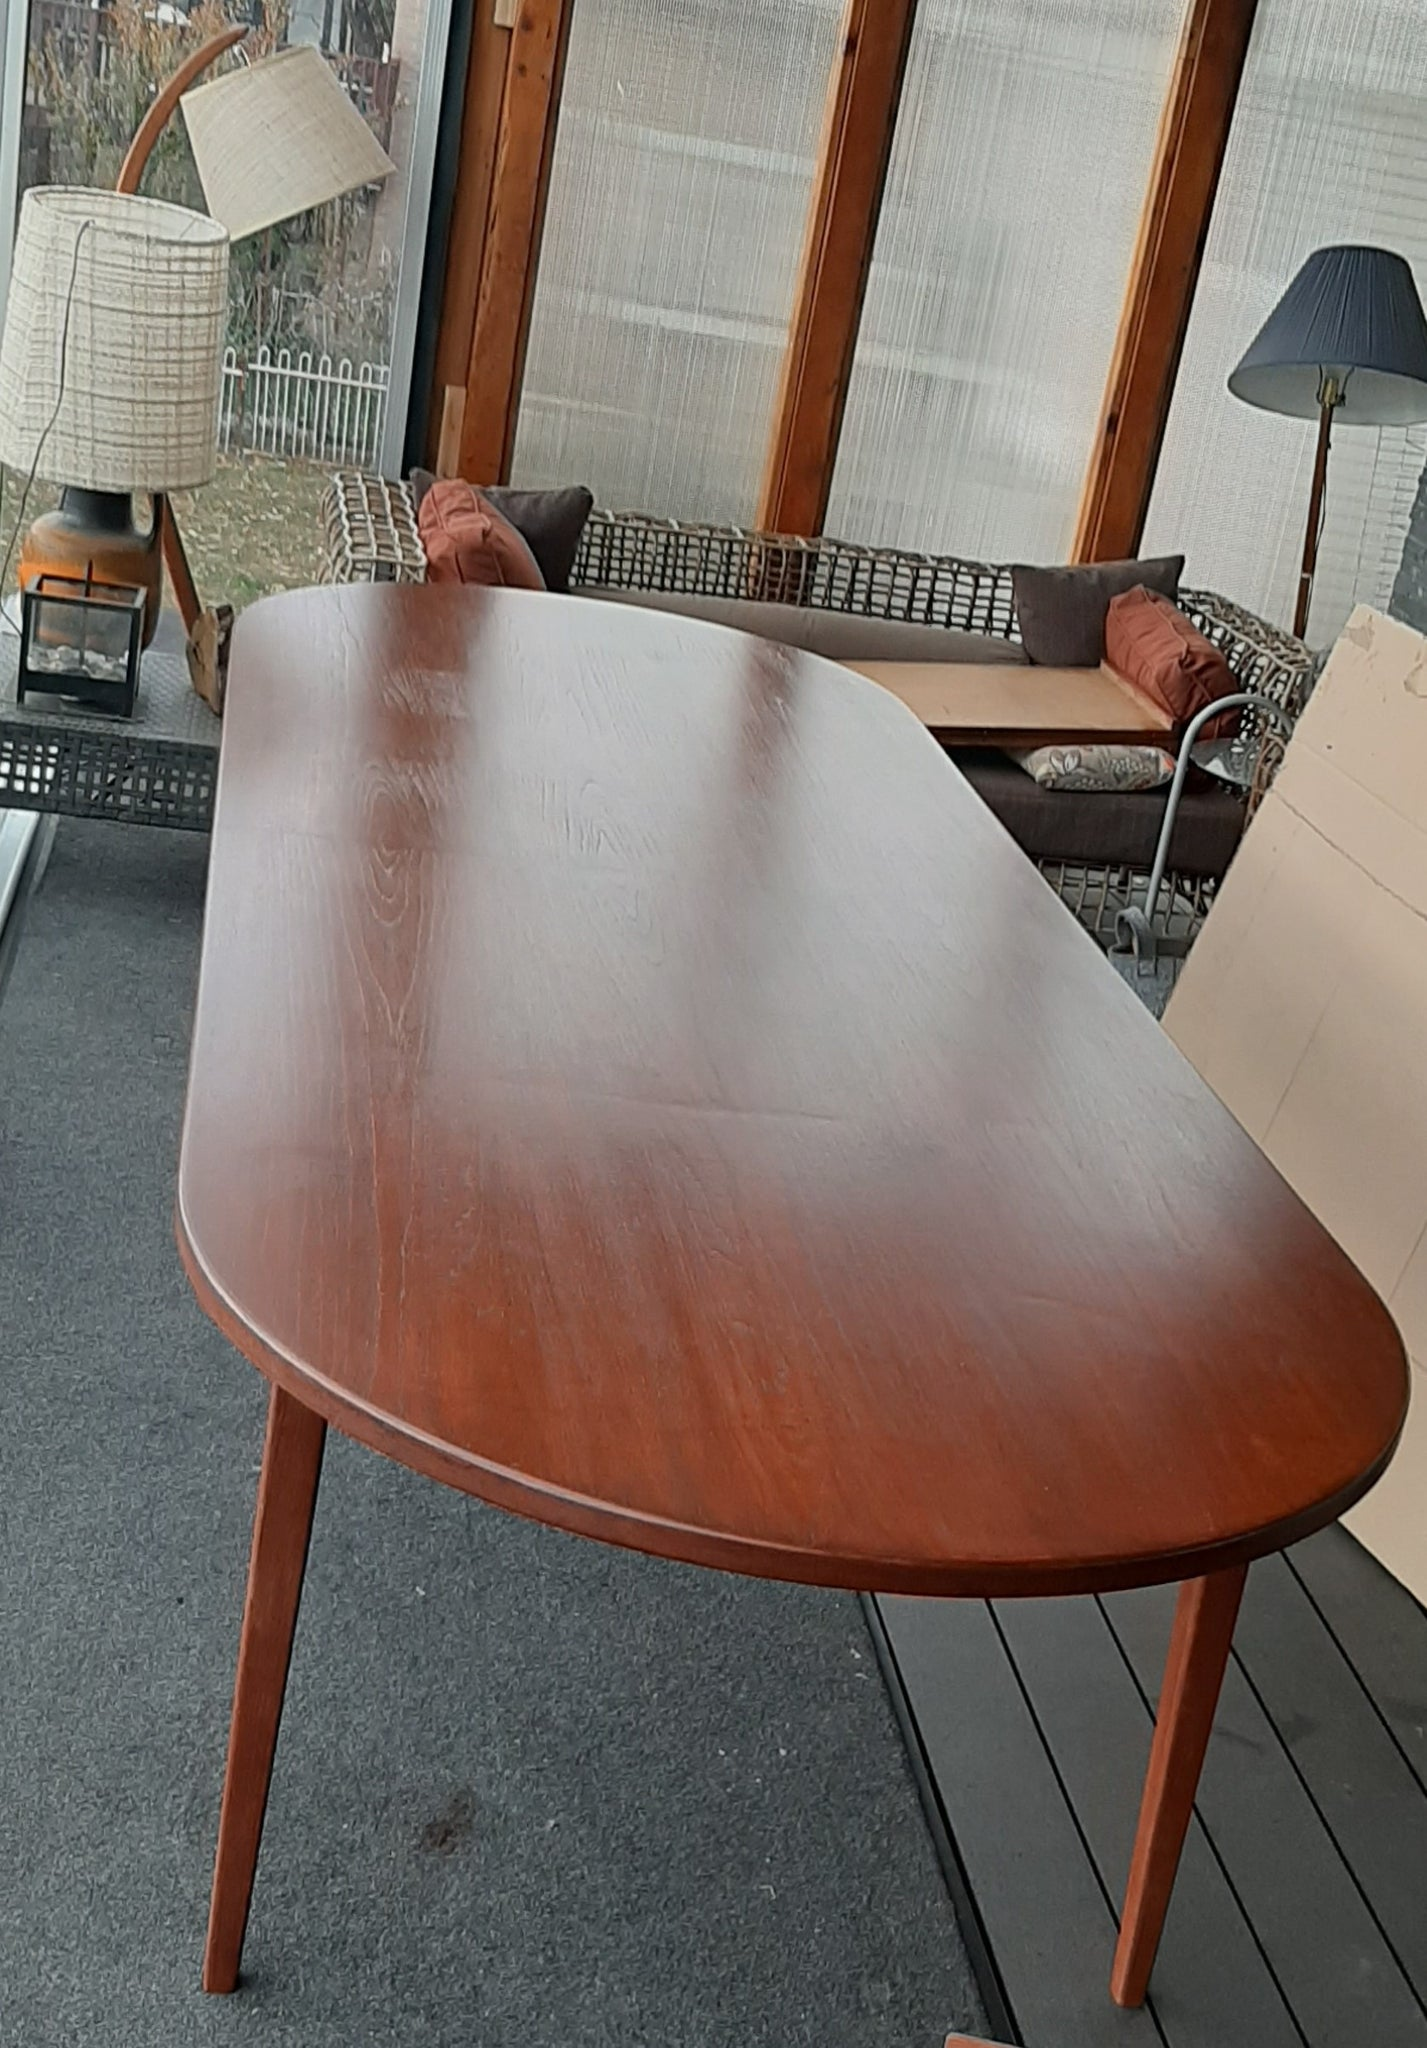 Refinished Unique Danish Mcm Teak Table Dining Or Boardroom 10 Ft S Mid Century Modern Toronto